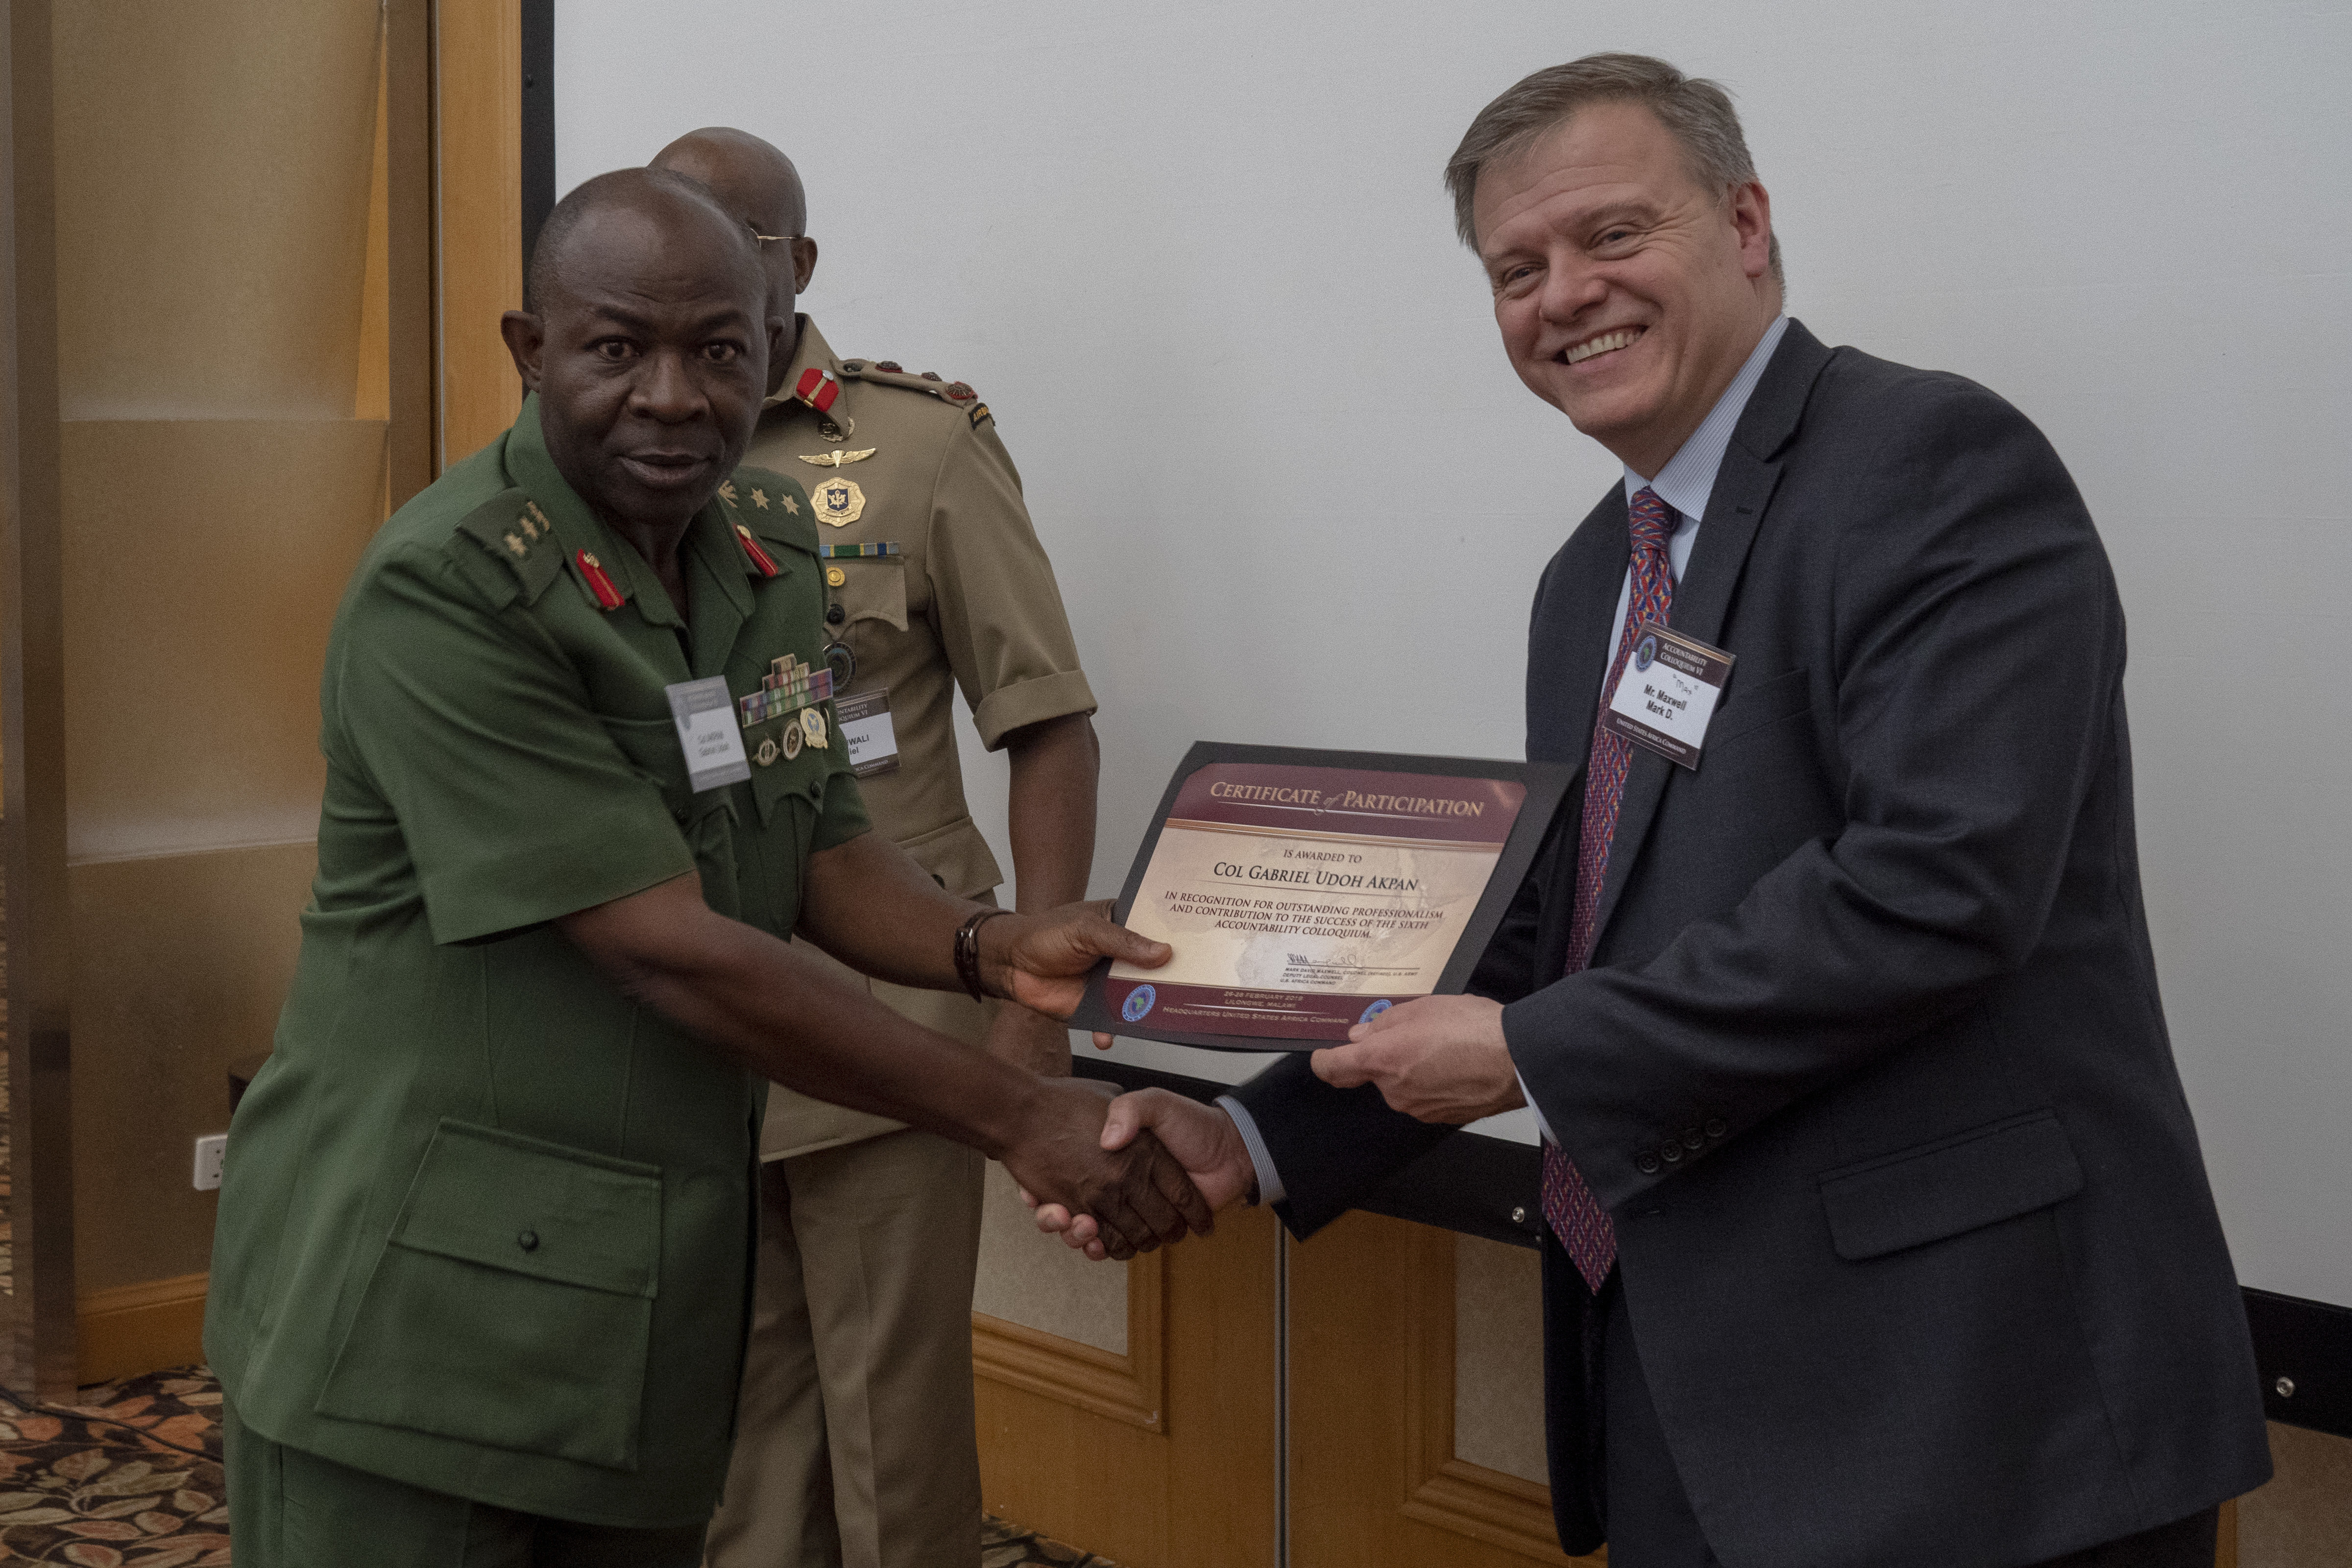 "Colonel Gabriel Udoh Akpan receives his Certificate of Participation from Mr. Mark D. ""Max"" Maxwell on the final day of the Accountability Colloquium VI in Lilongwe, Malawi, on February 28, 2019. The Accountability Colloquium is an annual event hosted by United States Africa Command's Office of Legal Counsel that seeks to create a collaborative forum for military commanders and their legal advisors to exchange information on topics related to African military operations. This iteration featured over 80 participants from 30 African nations. (DoD Photo by U.S. Army Sergeant Edward A. Salcedo)"